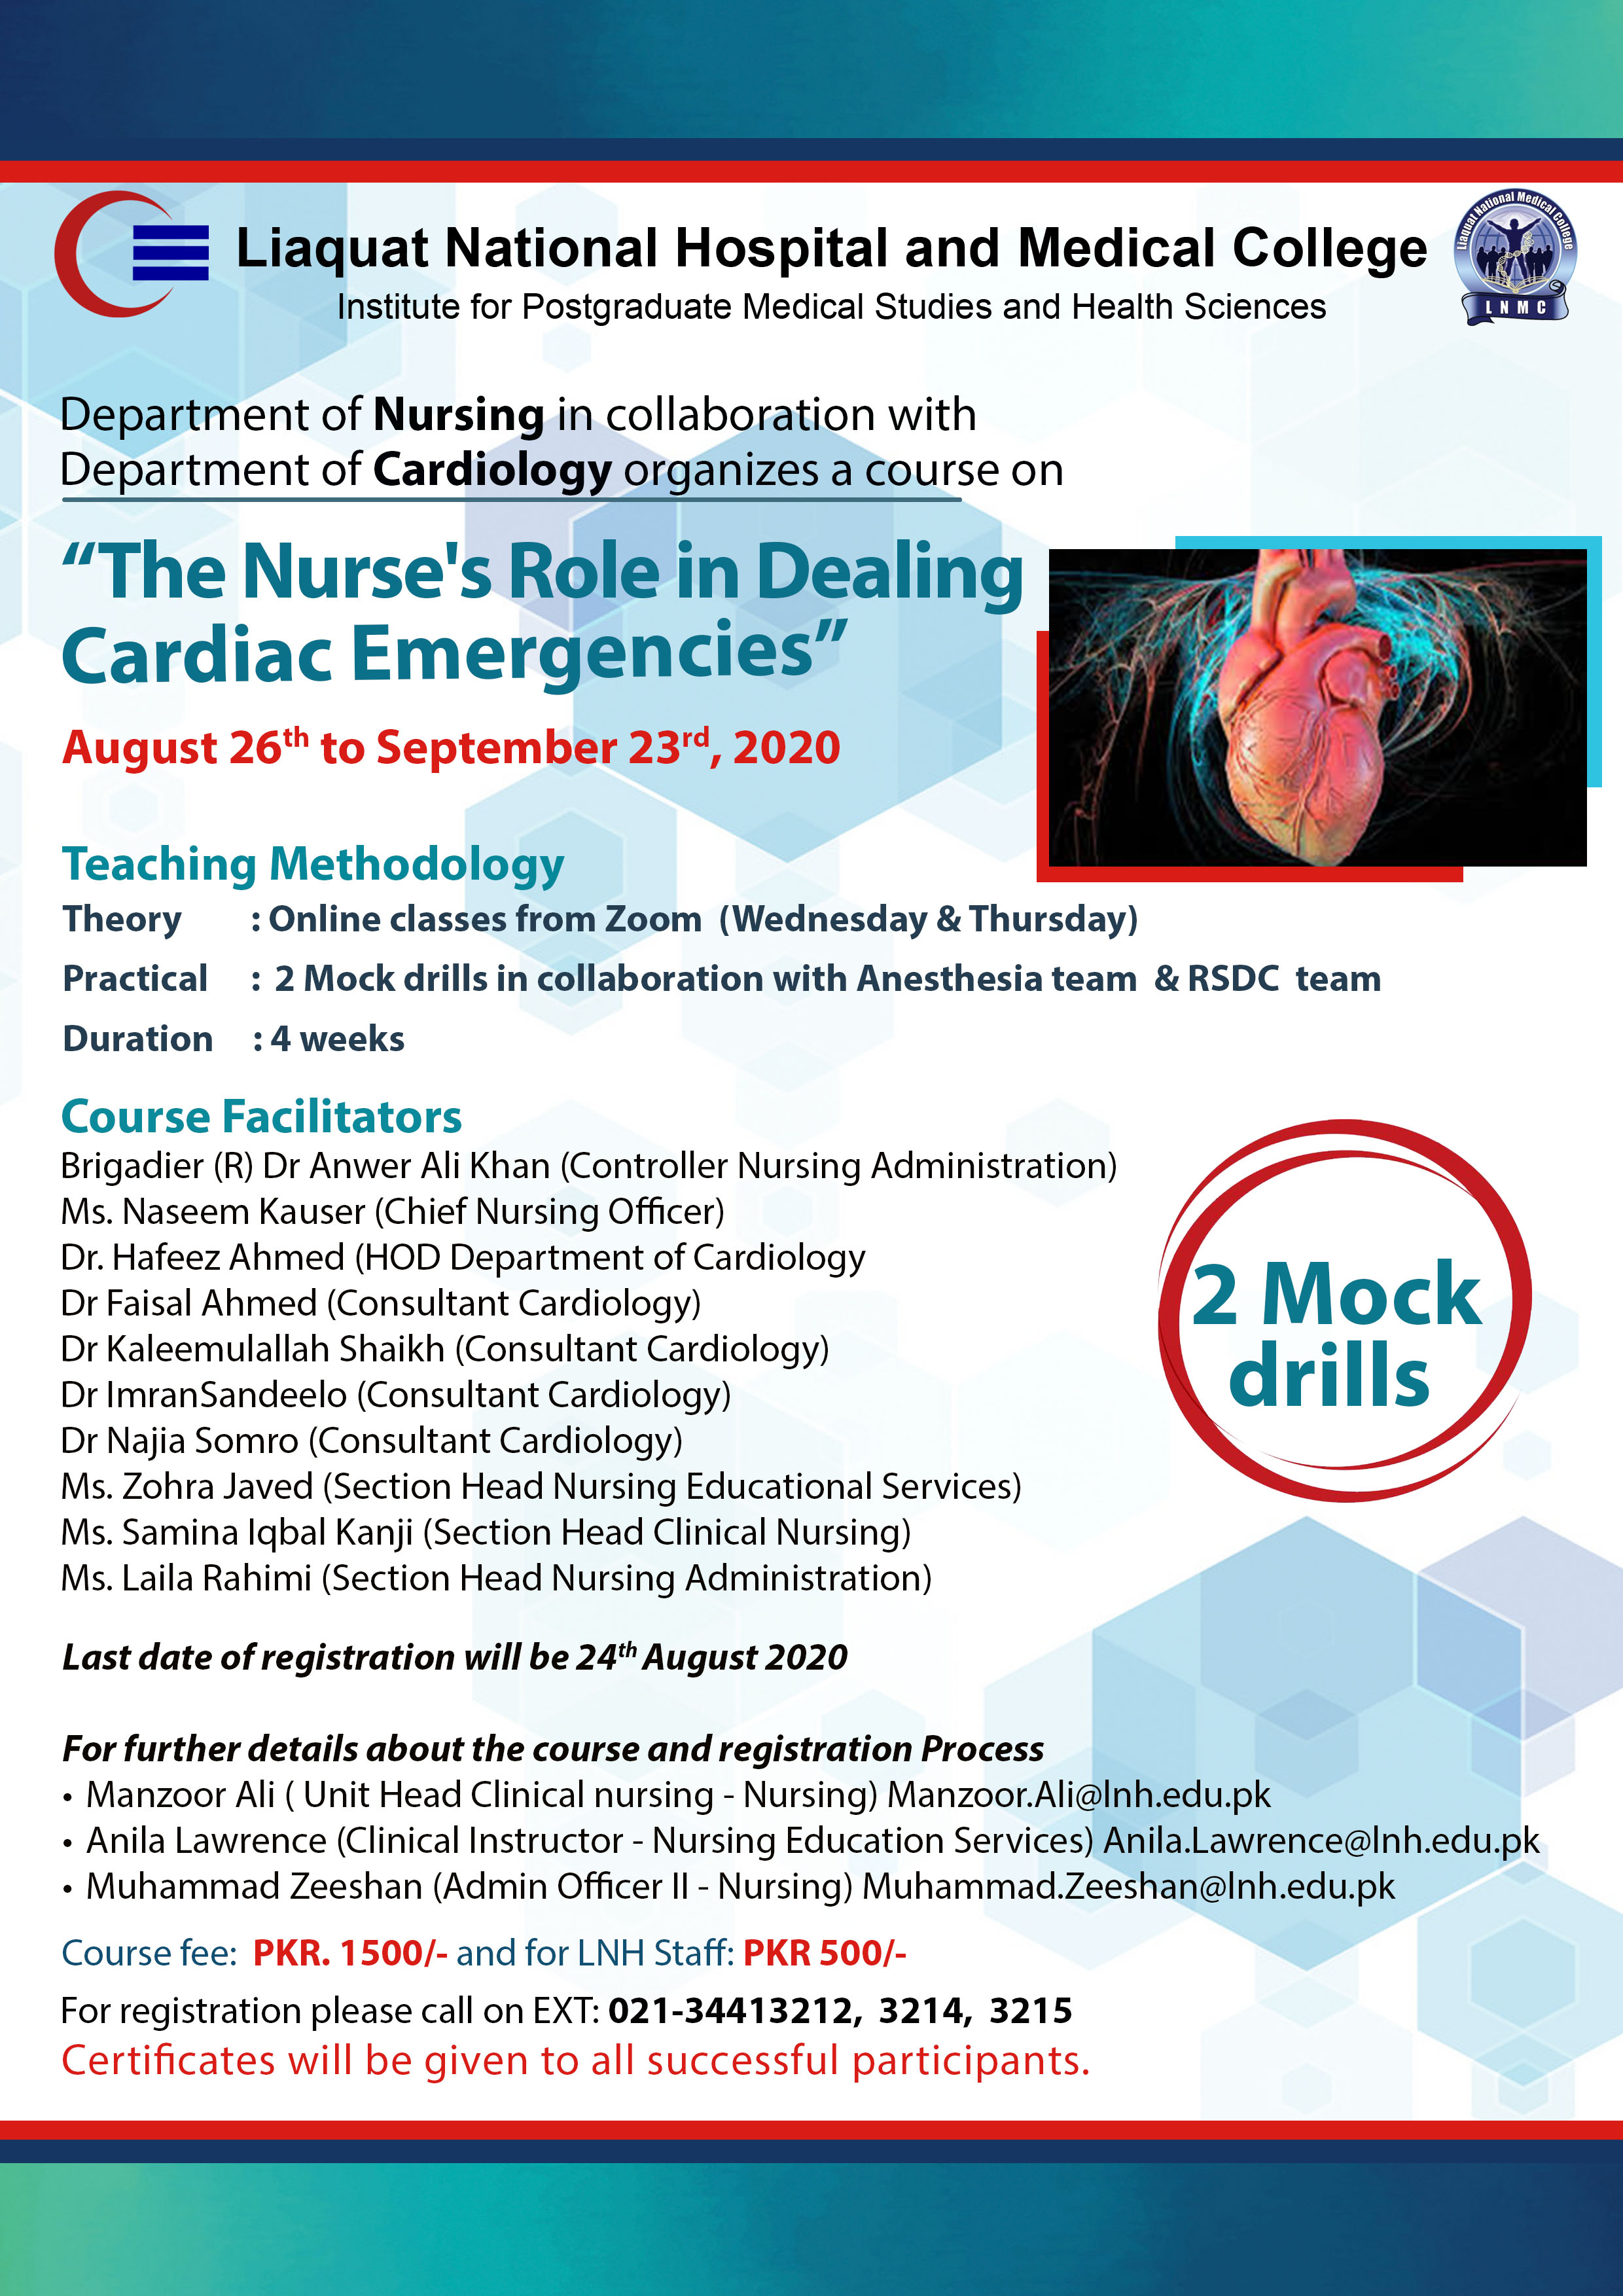 Course on The Nurse's Role in dealing Cardiac Emergencies